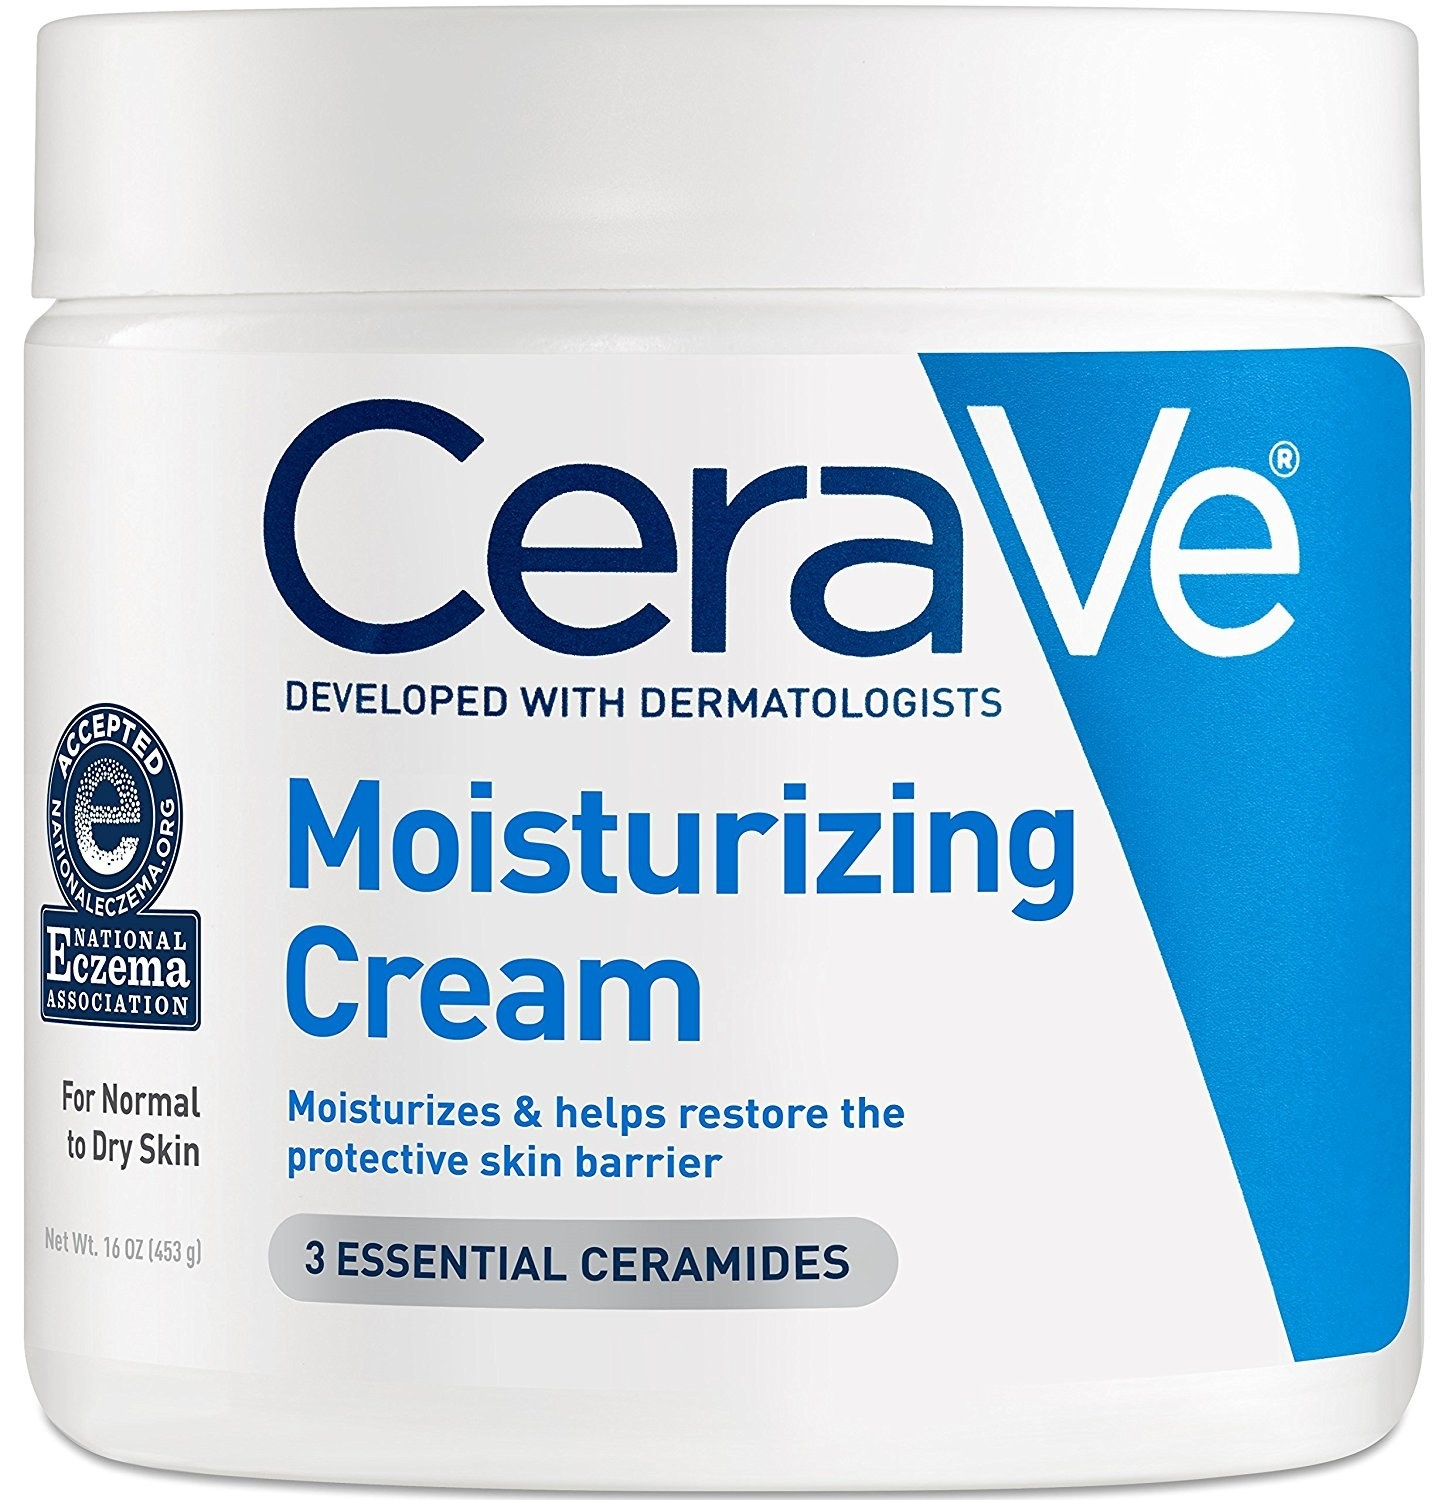 9cd10b48a1149 A daily face (and body!) moisturizing cream for people with dry to normal  skin. This is a miracle product for dryness